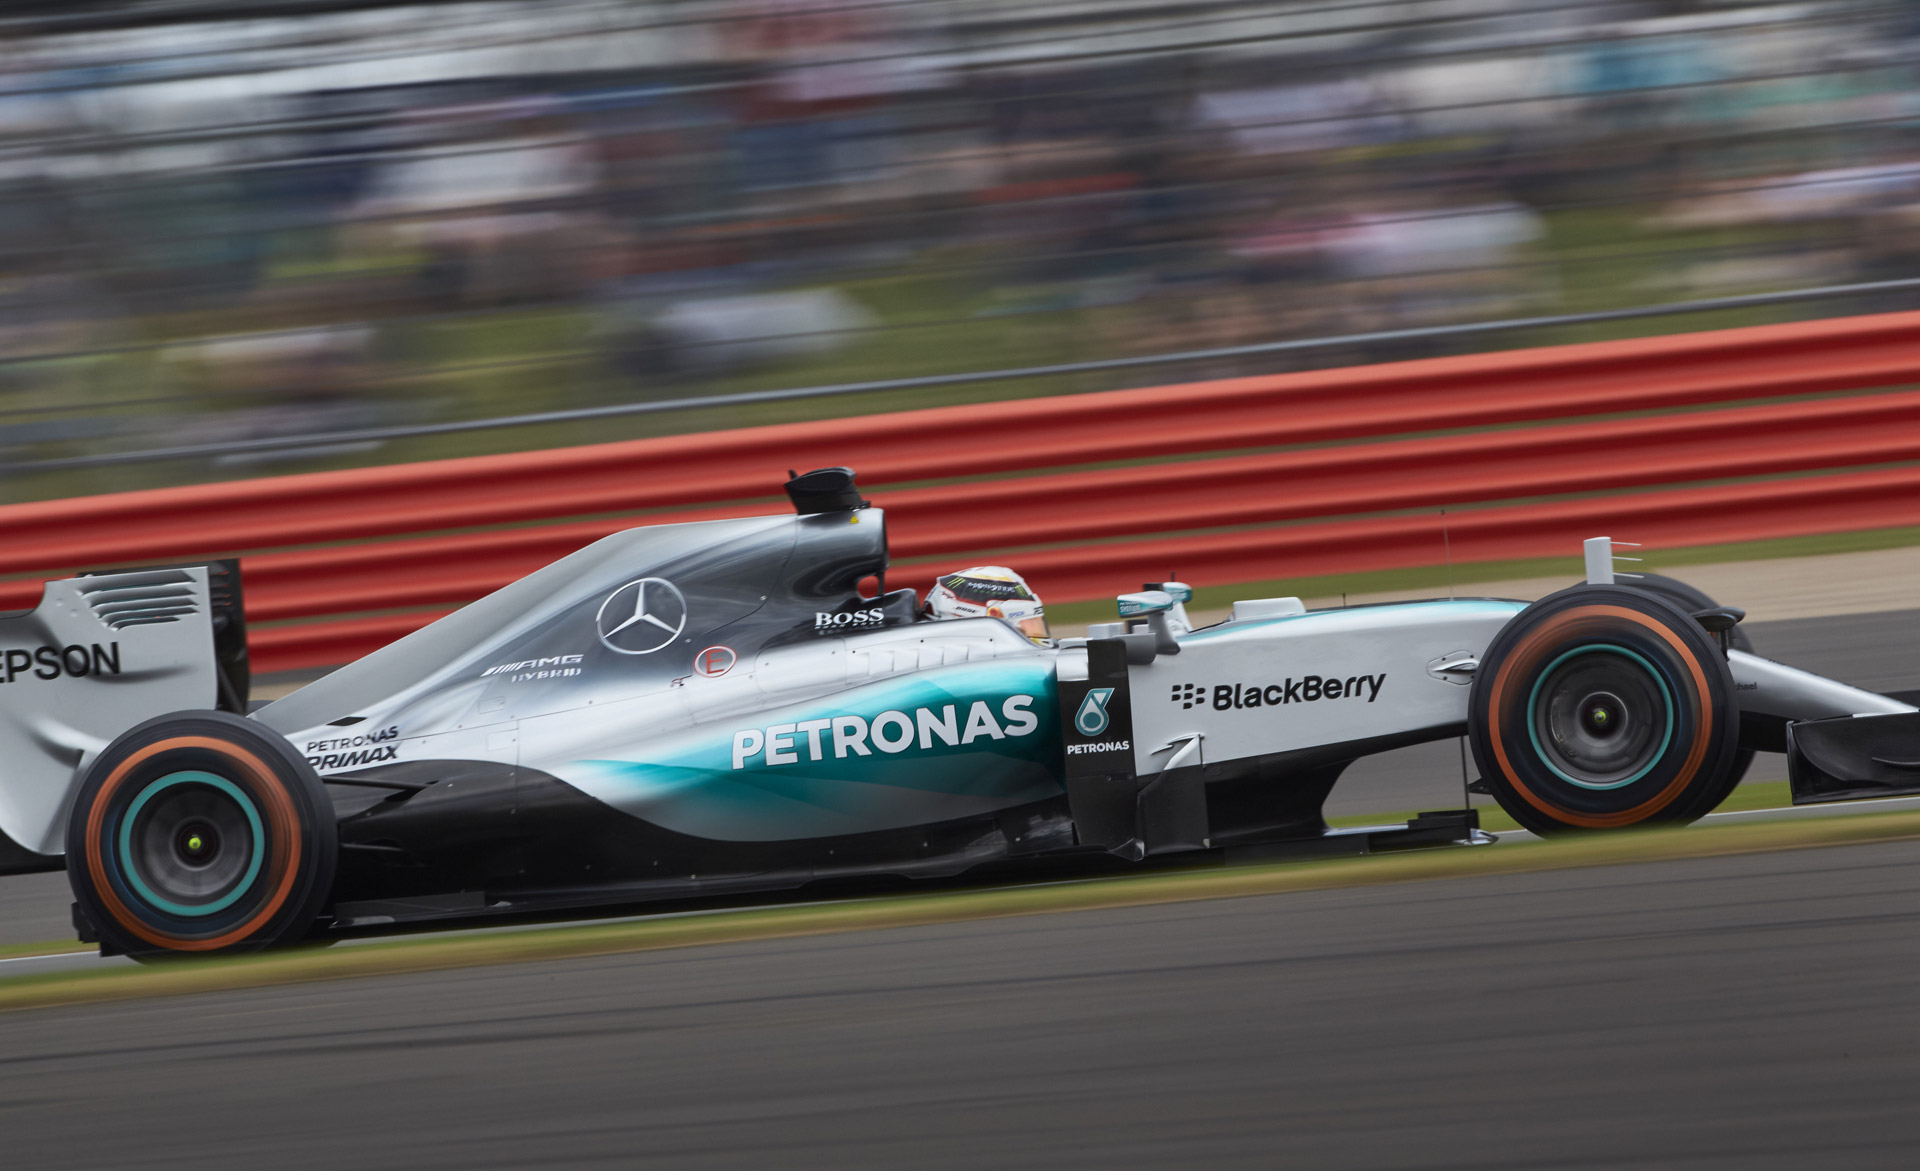 mercedes amg one two finish at 2015 formula one british grand prix. Black Bedroom Furniture Sets. Home Design Ideas